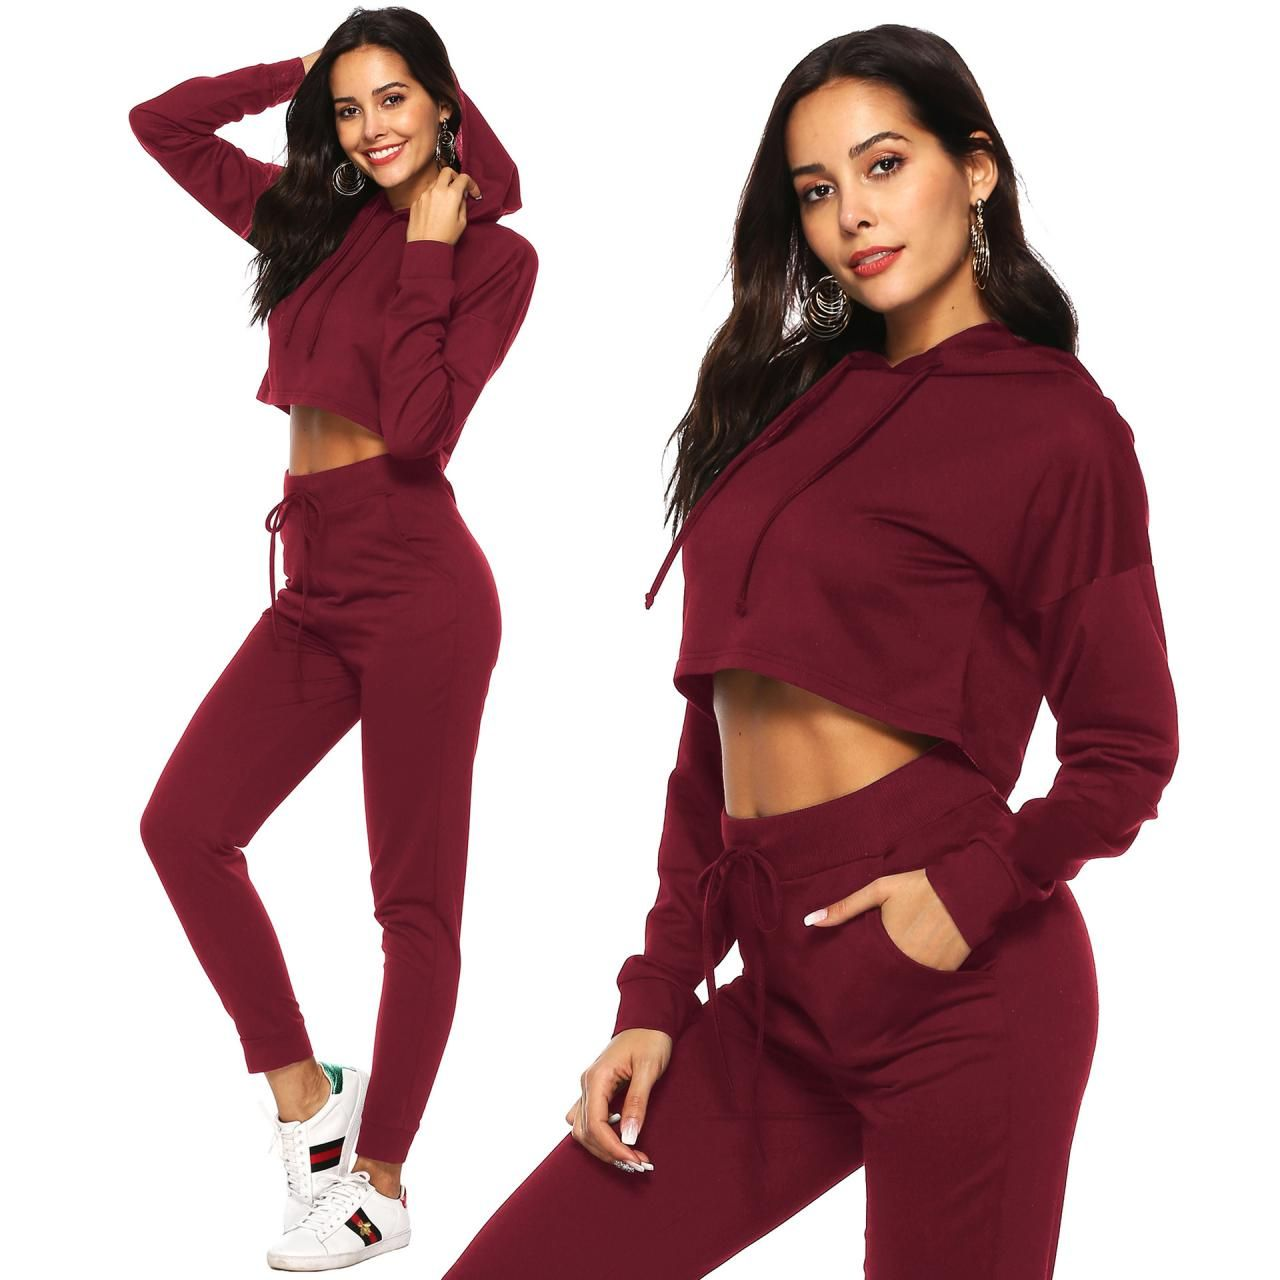 Women Tracksuit Autumn Winter Casual Hooded Crop Top Long